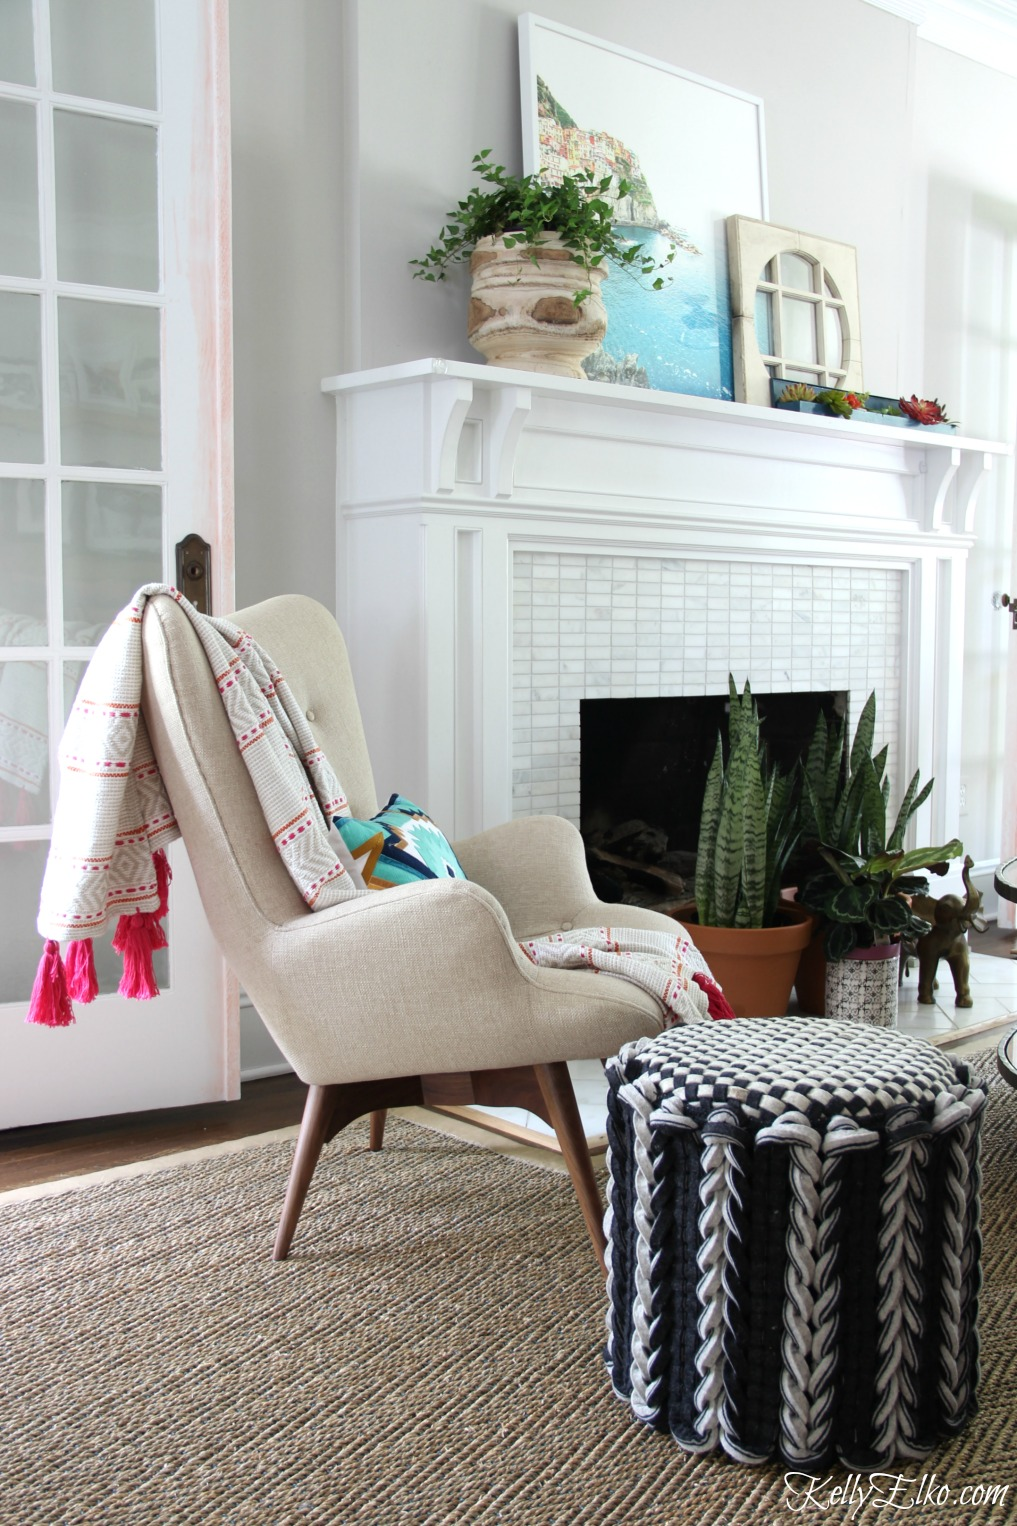 Love this teddy bear chair with tassel throw and braided wool ottoman kellyelko.com